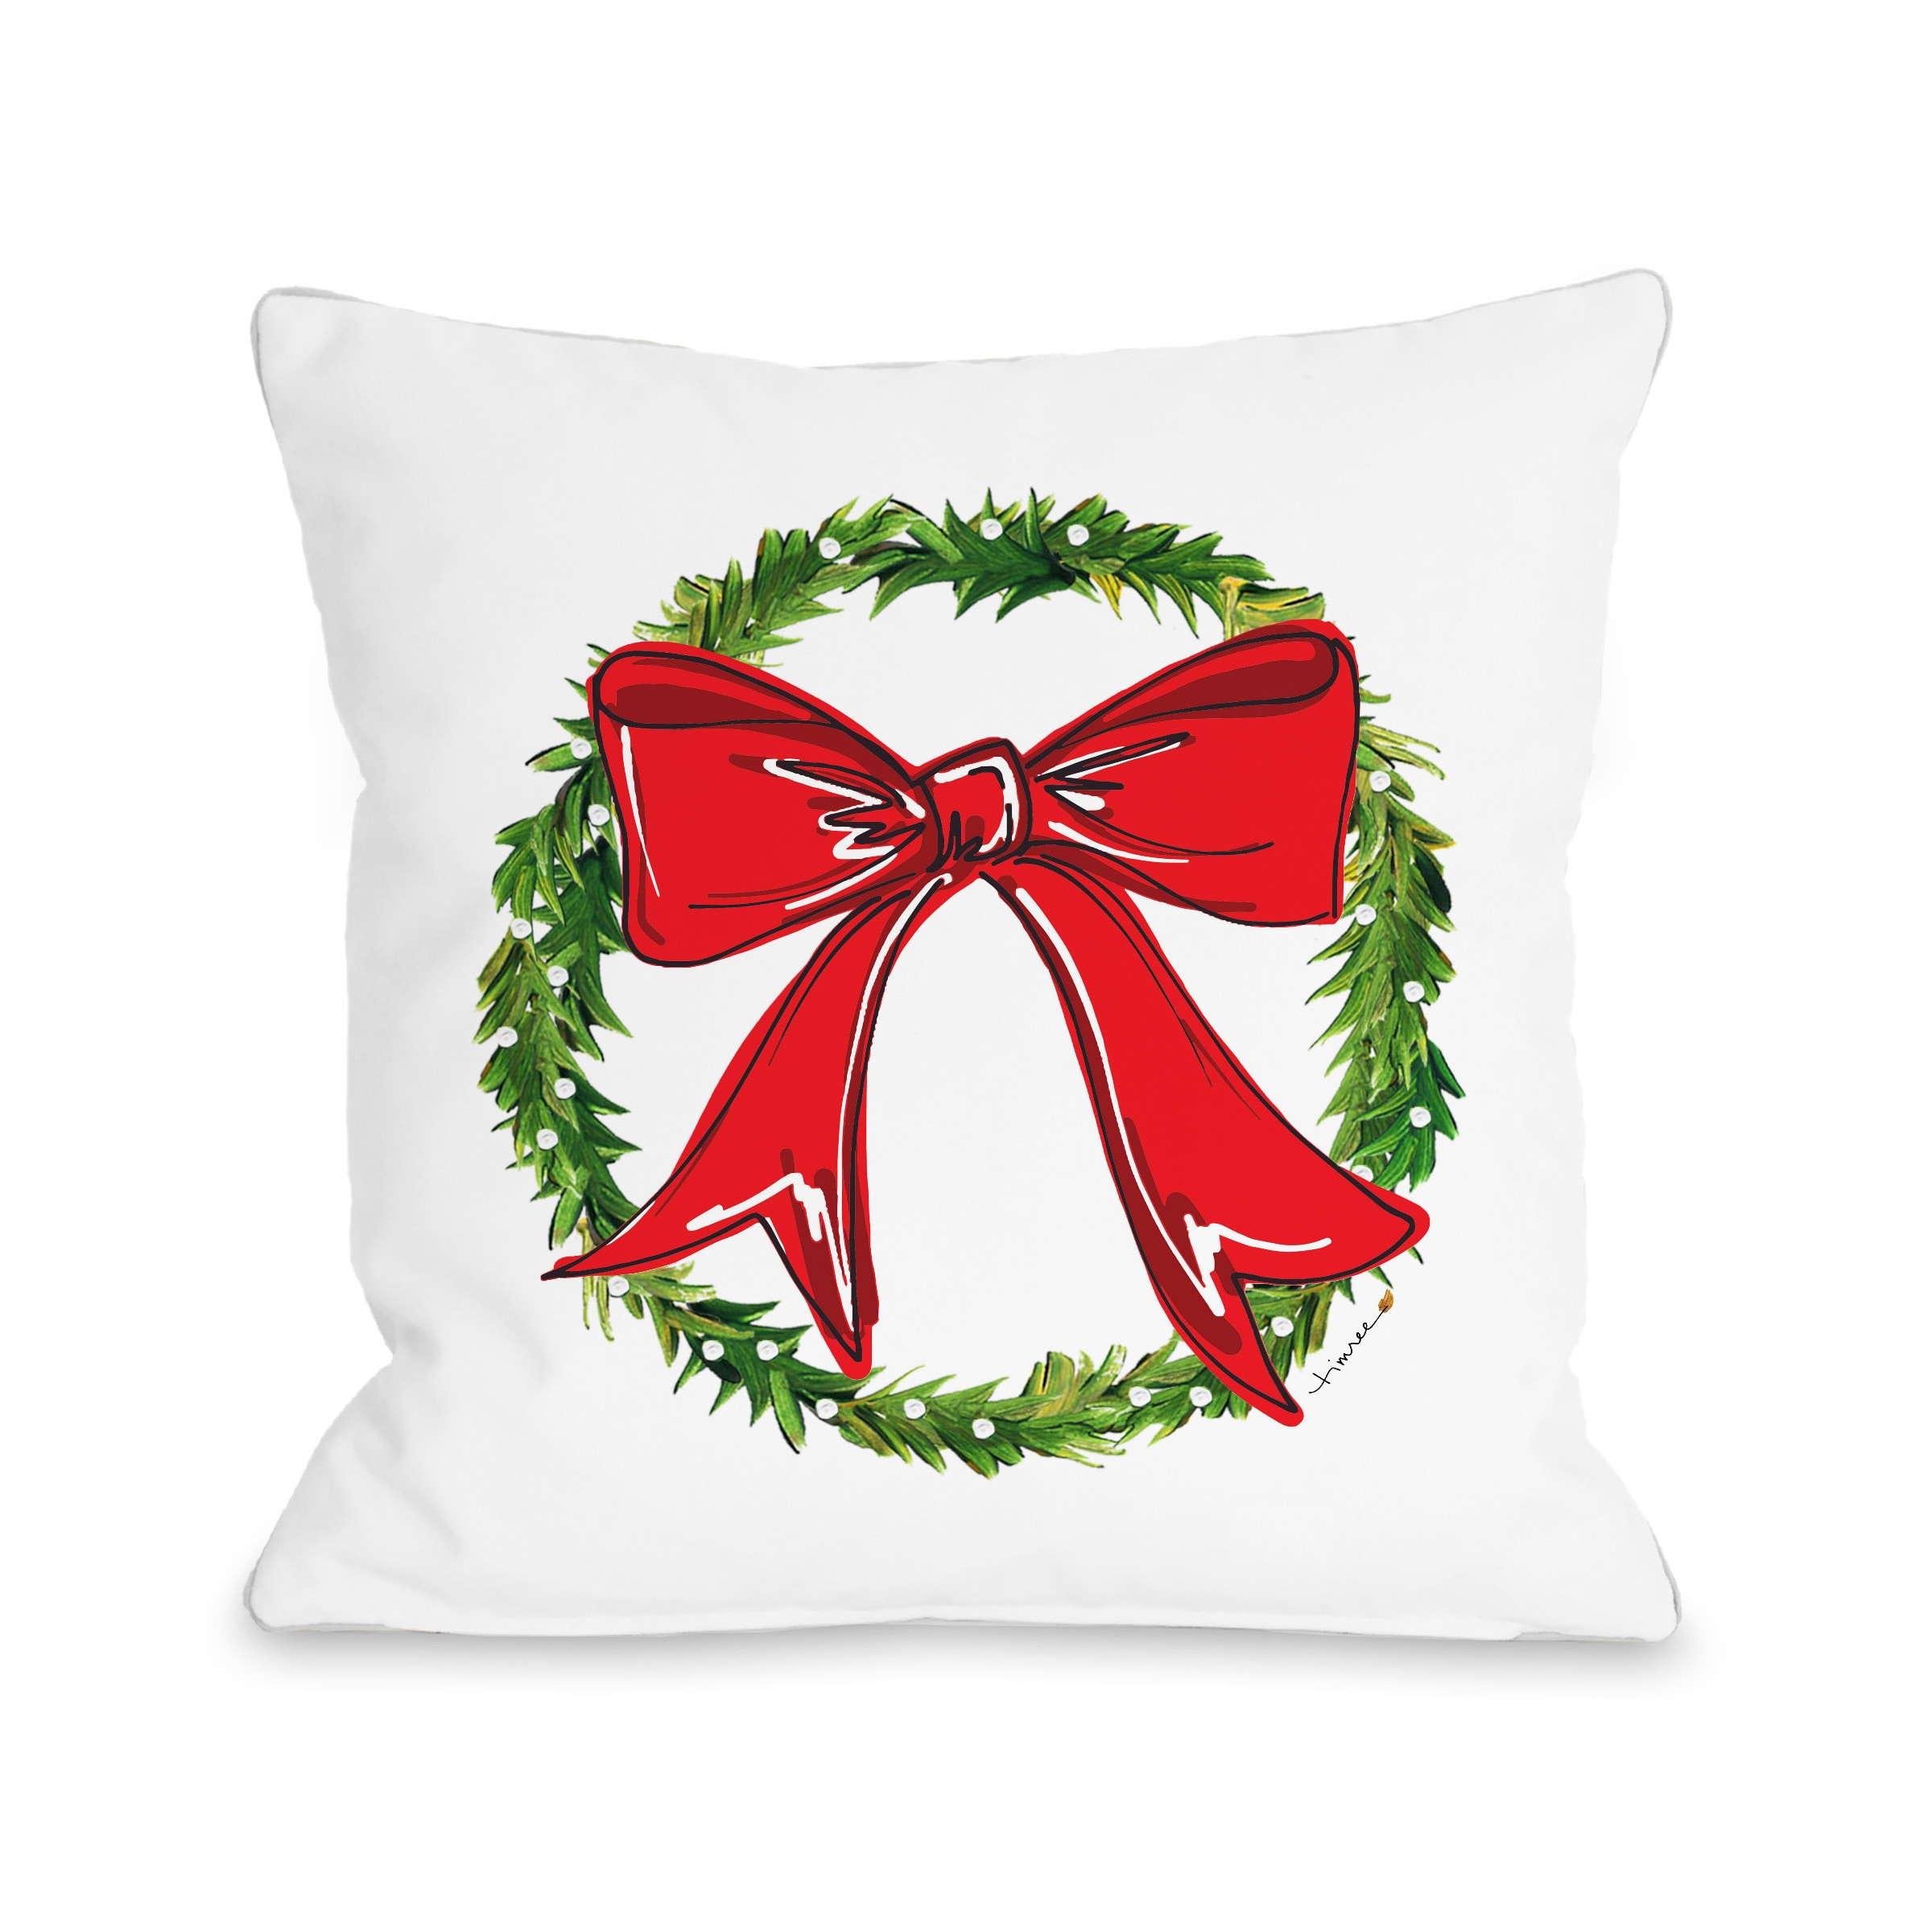 Bow Wreath - Red 16x16 Pillow by Timree Gold